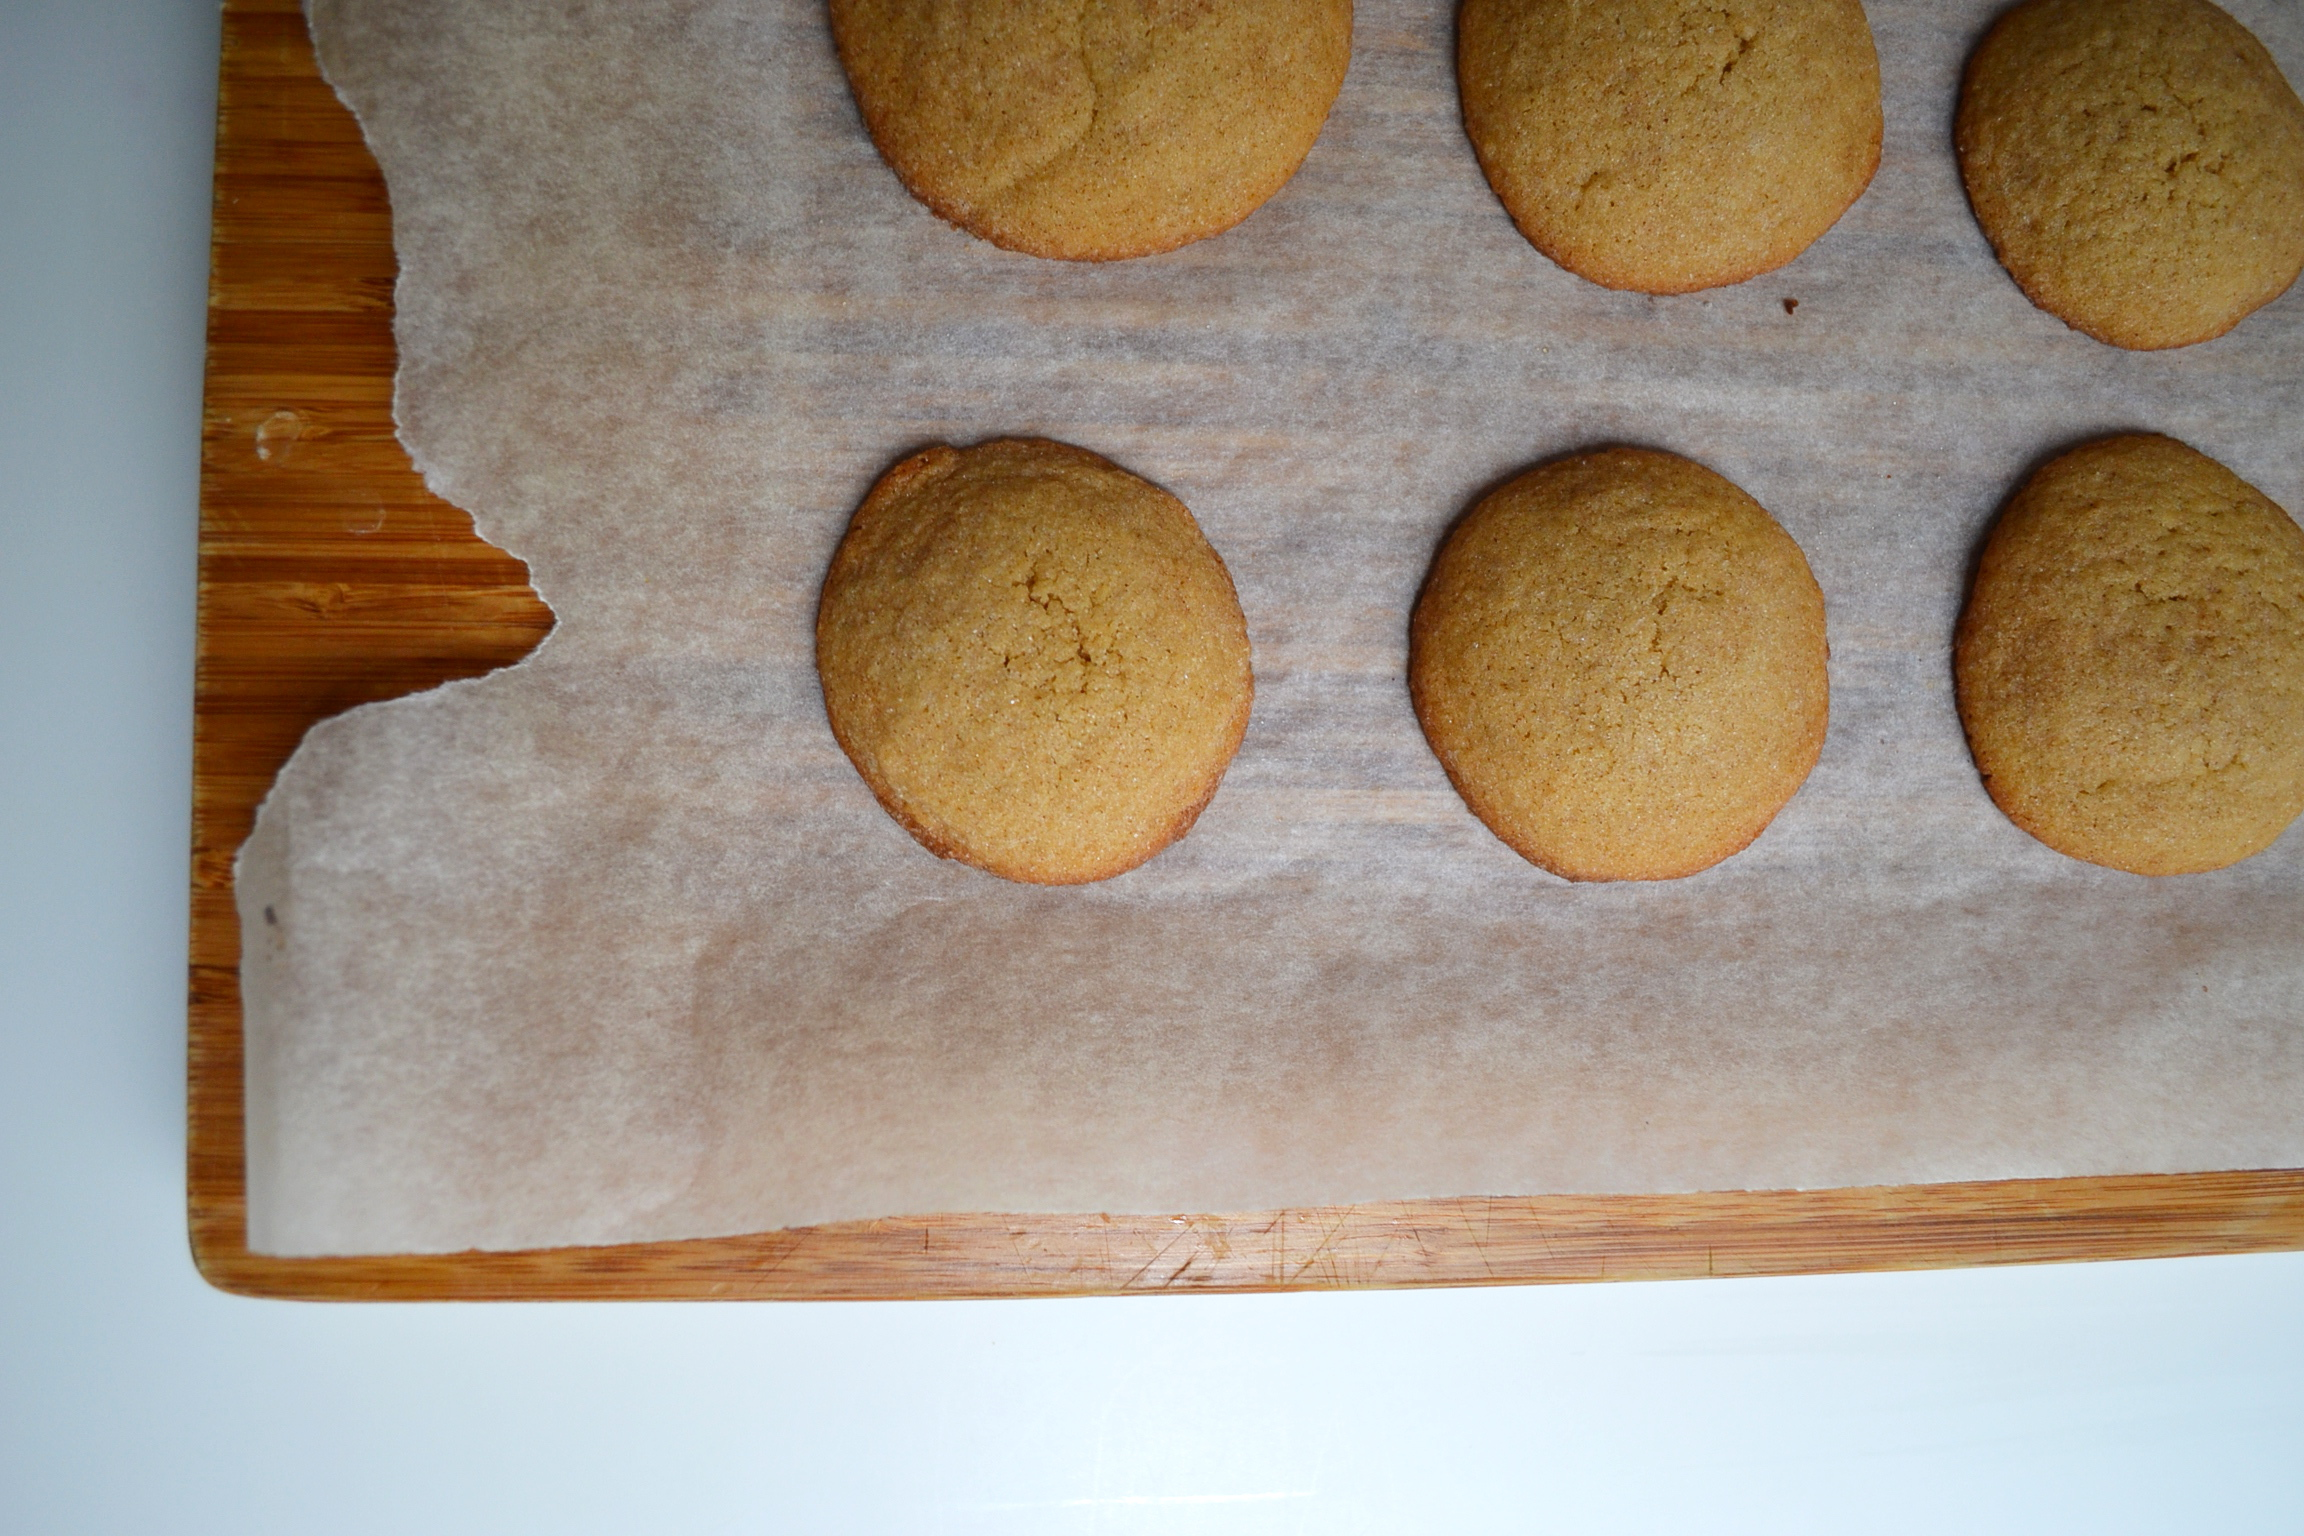 Let's Bake: Snickerdoodle Cookies